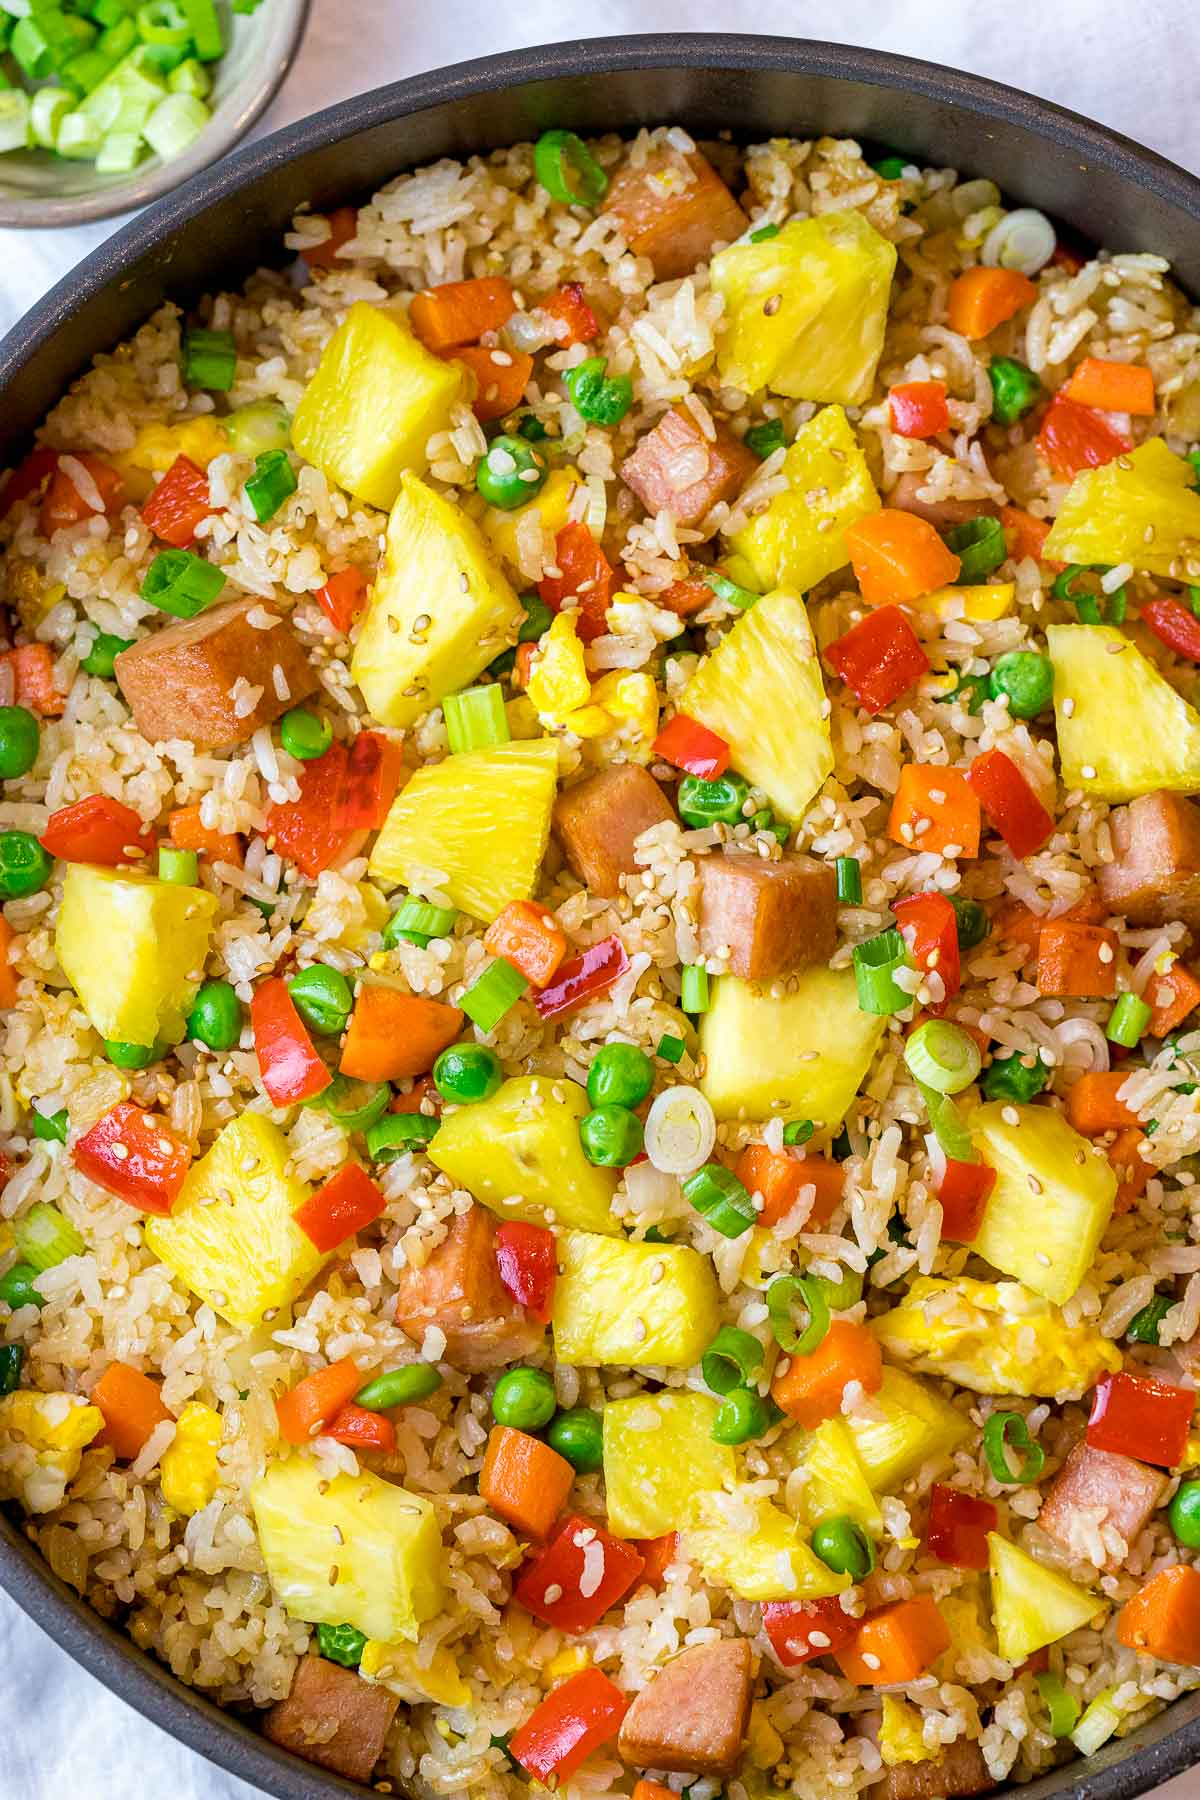 Hawaiian pineapple fried rice with fresh pineapples, spam, peas, and carrots in a pan